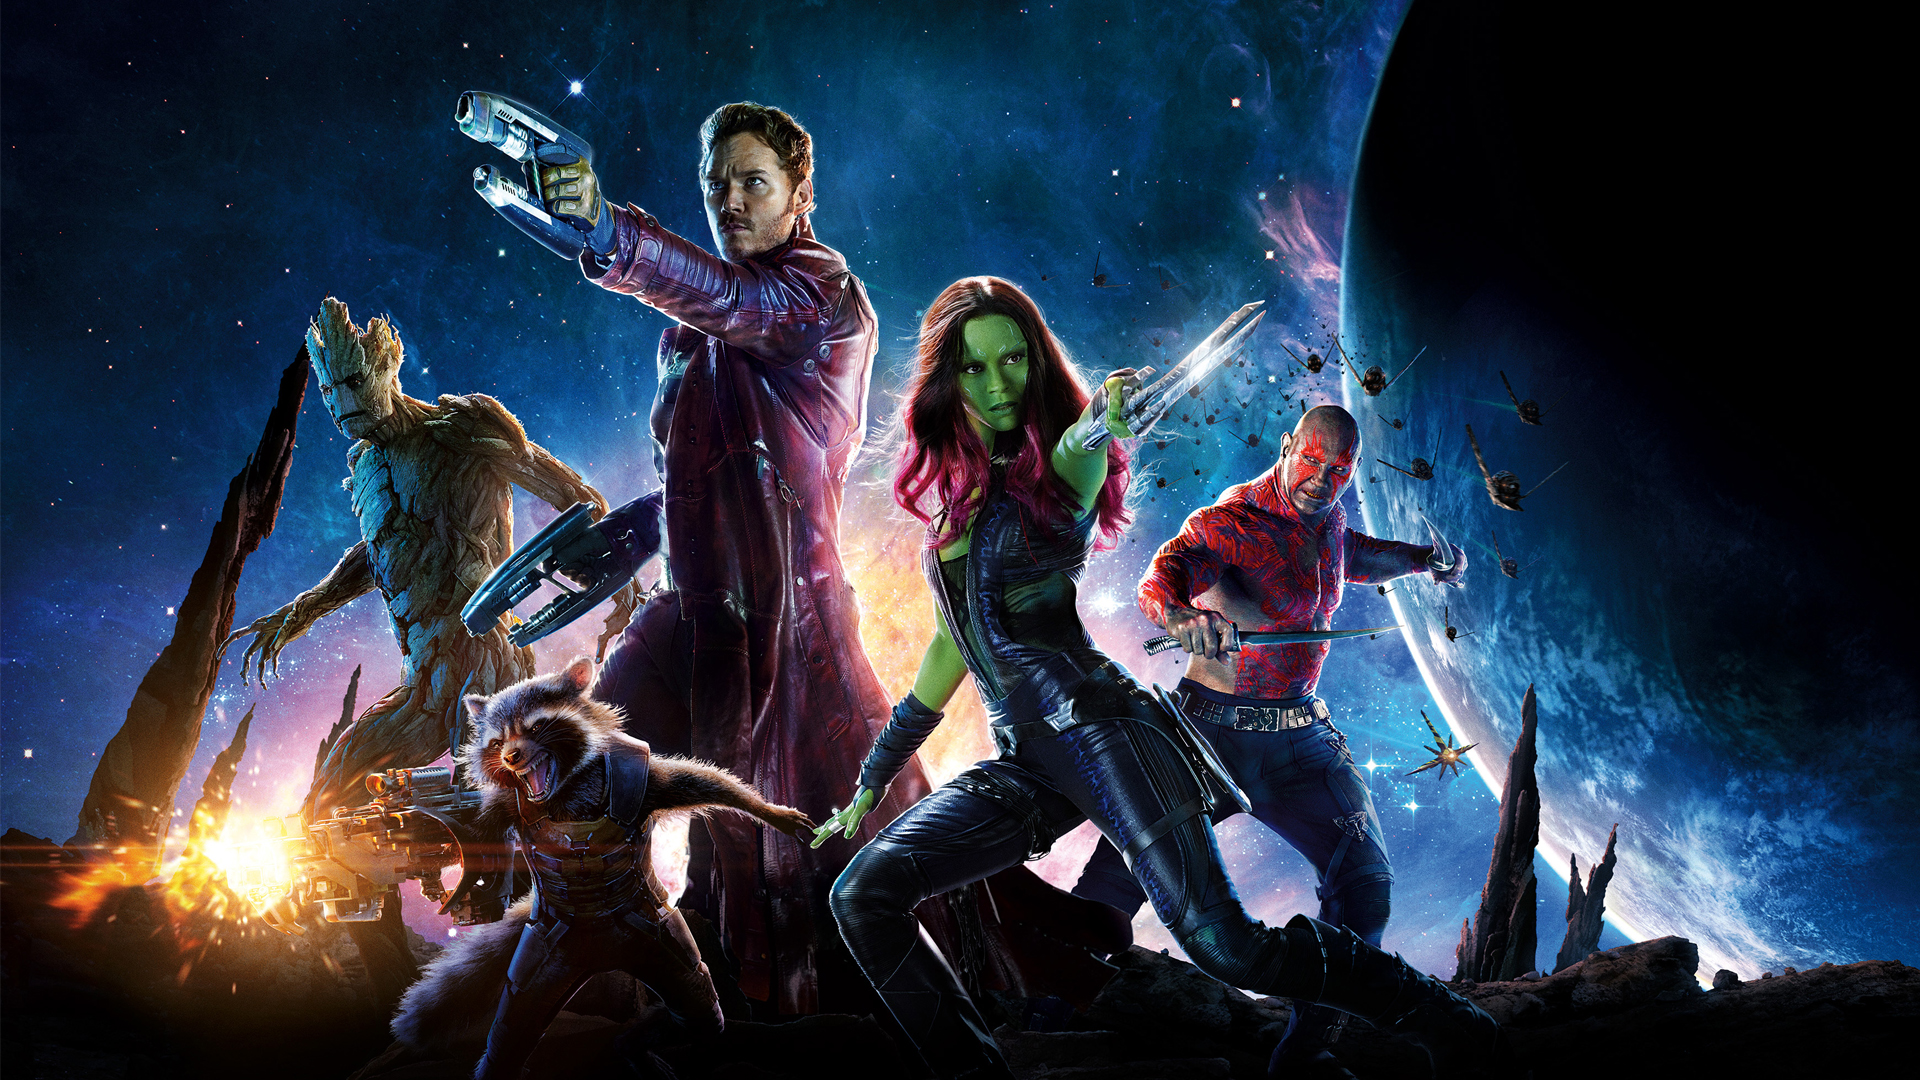 Vin Diesel, Bradley Cooper, Chris Pratt, Zoe Saldana and Dave Bautista star in GUARDIANS OF THE GALAXY (2014). (Marvel Studios)